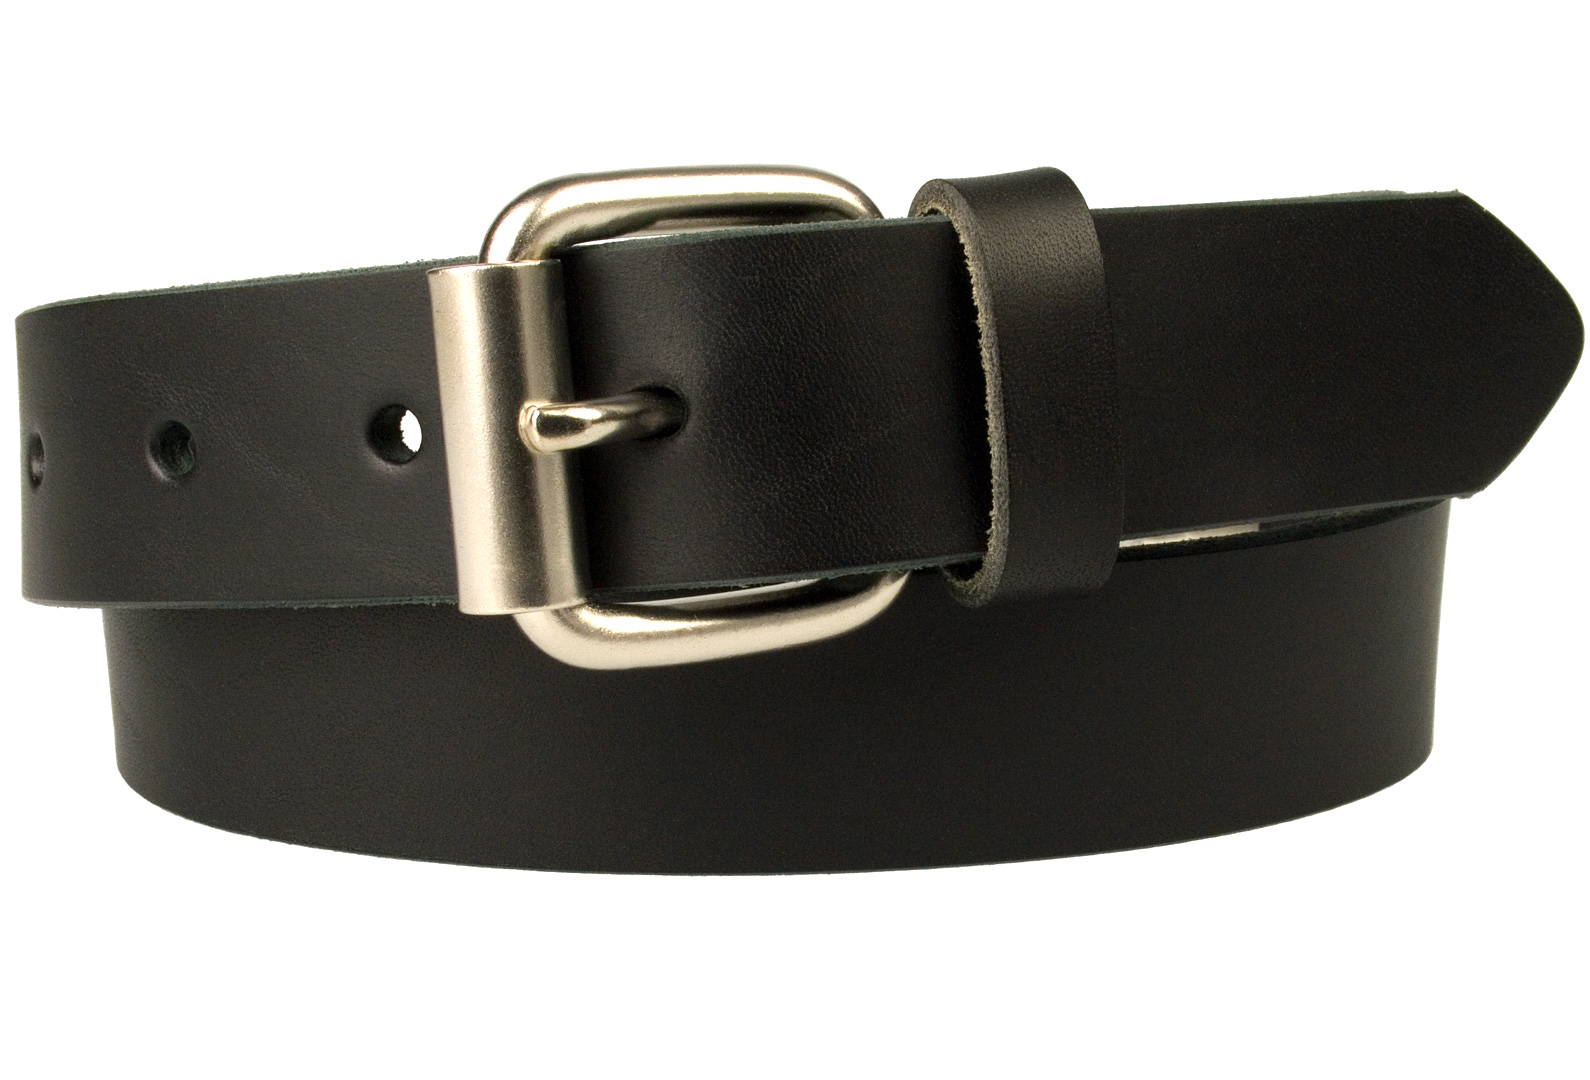 Online shopping from a great selection at Clothing Store. Showing the most relevant results. See all results for black leather belts for men.